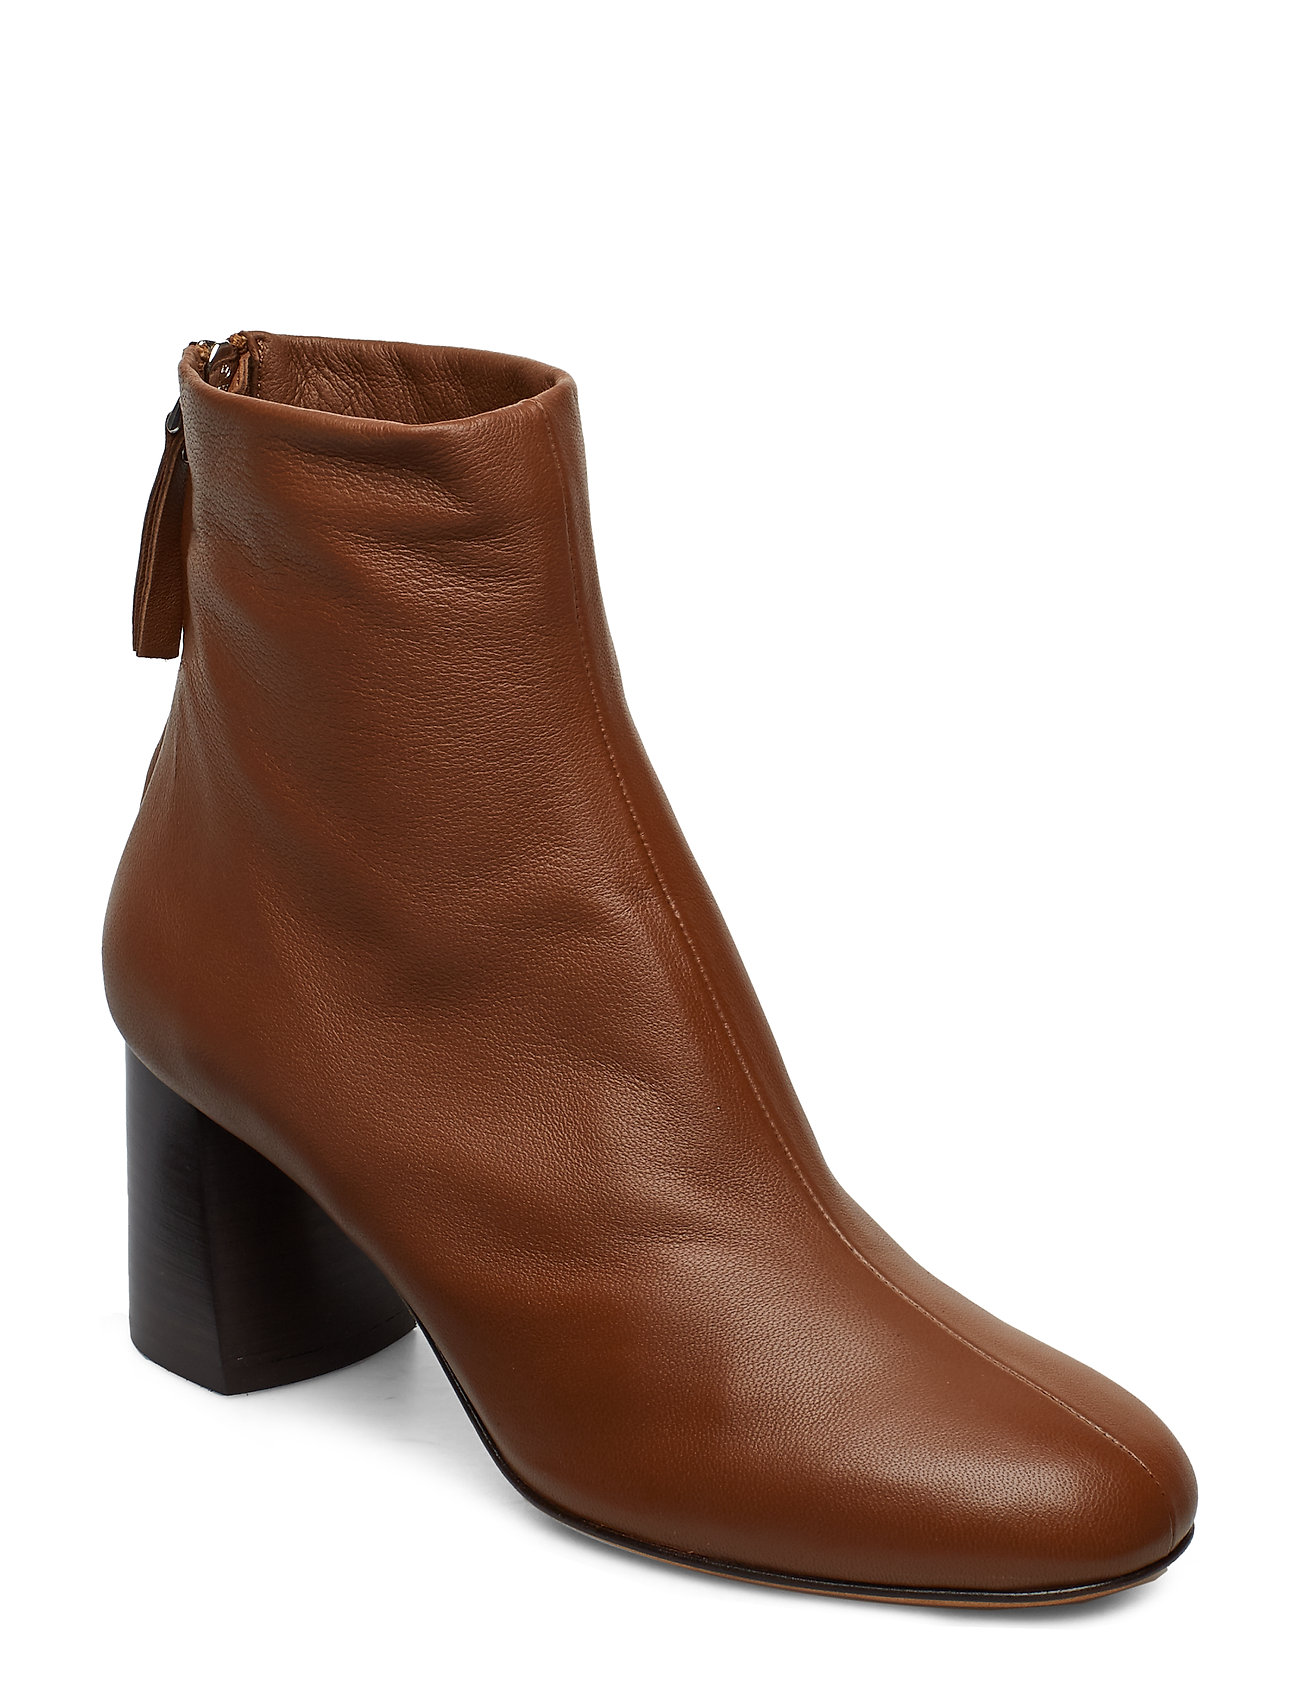 Image of Nadia - Soft Heel Boot Shoes Boots Ankle Boots Ankle Boots With Heel Brun 3.1 Phillip Lim (3215649495)